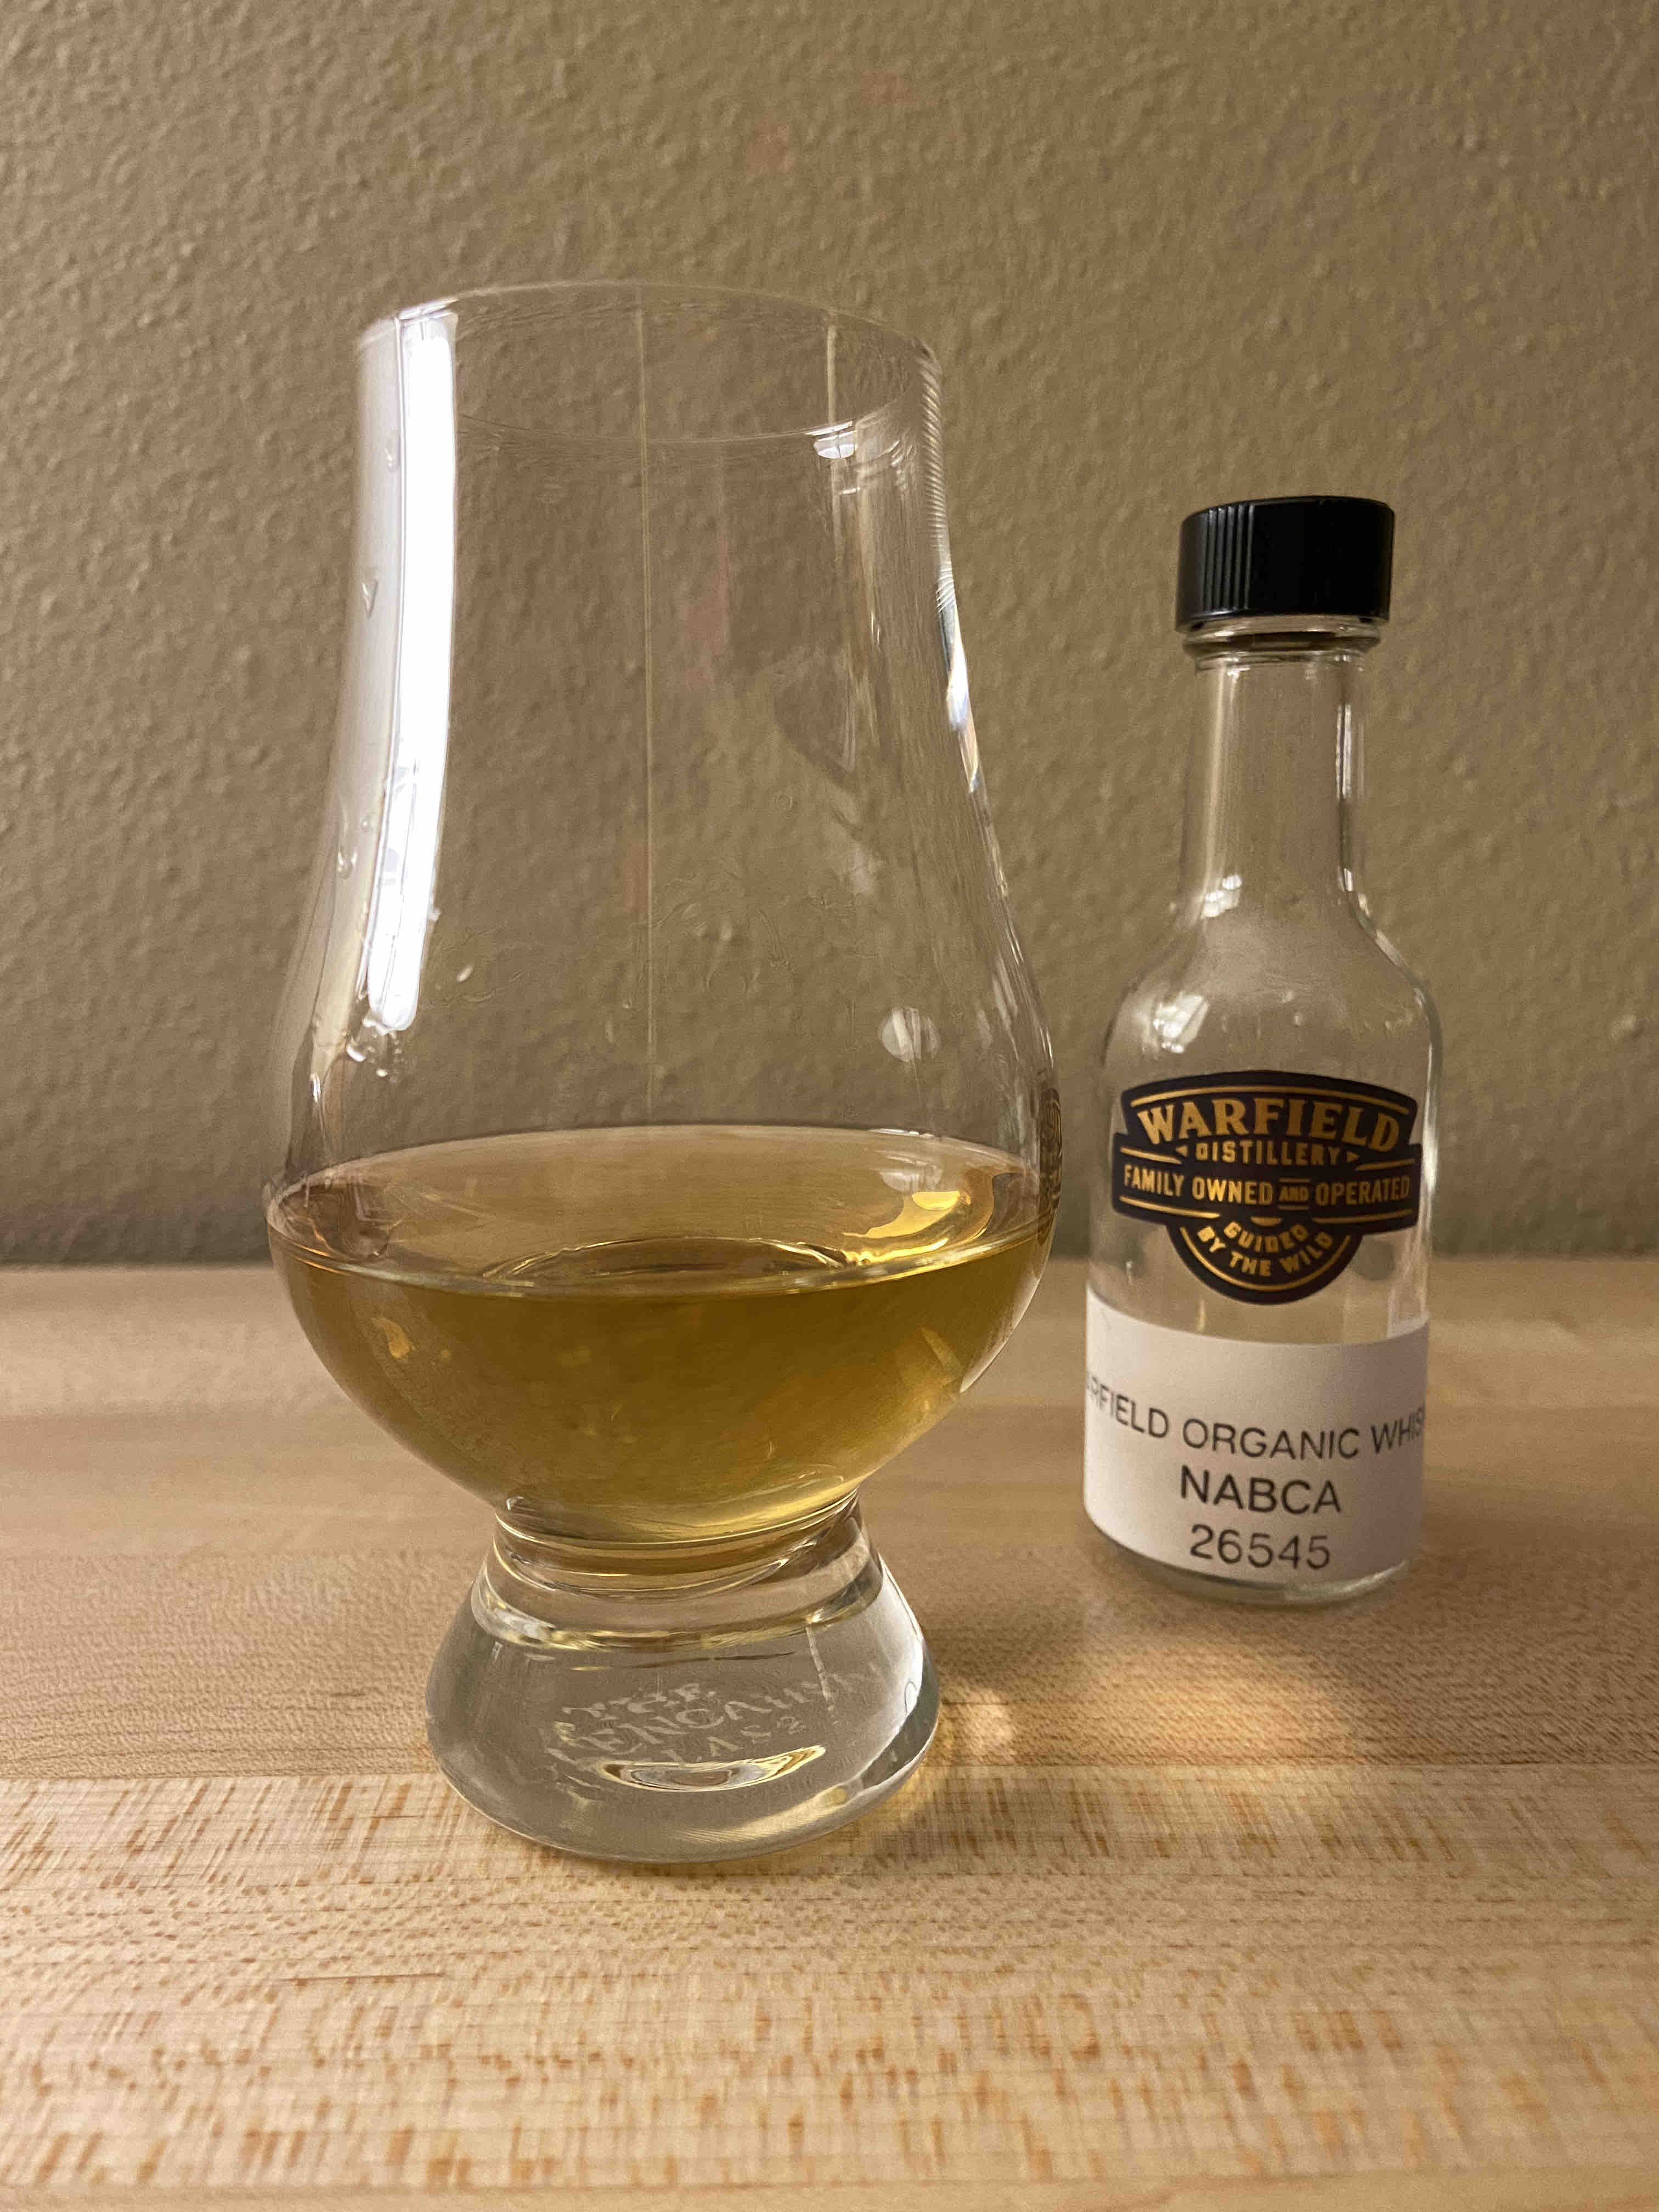 A pour of Warfield Organic American Whiskey.